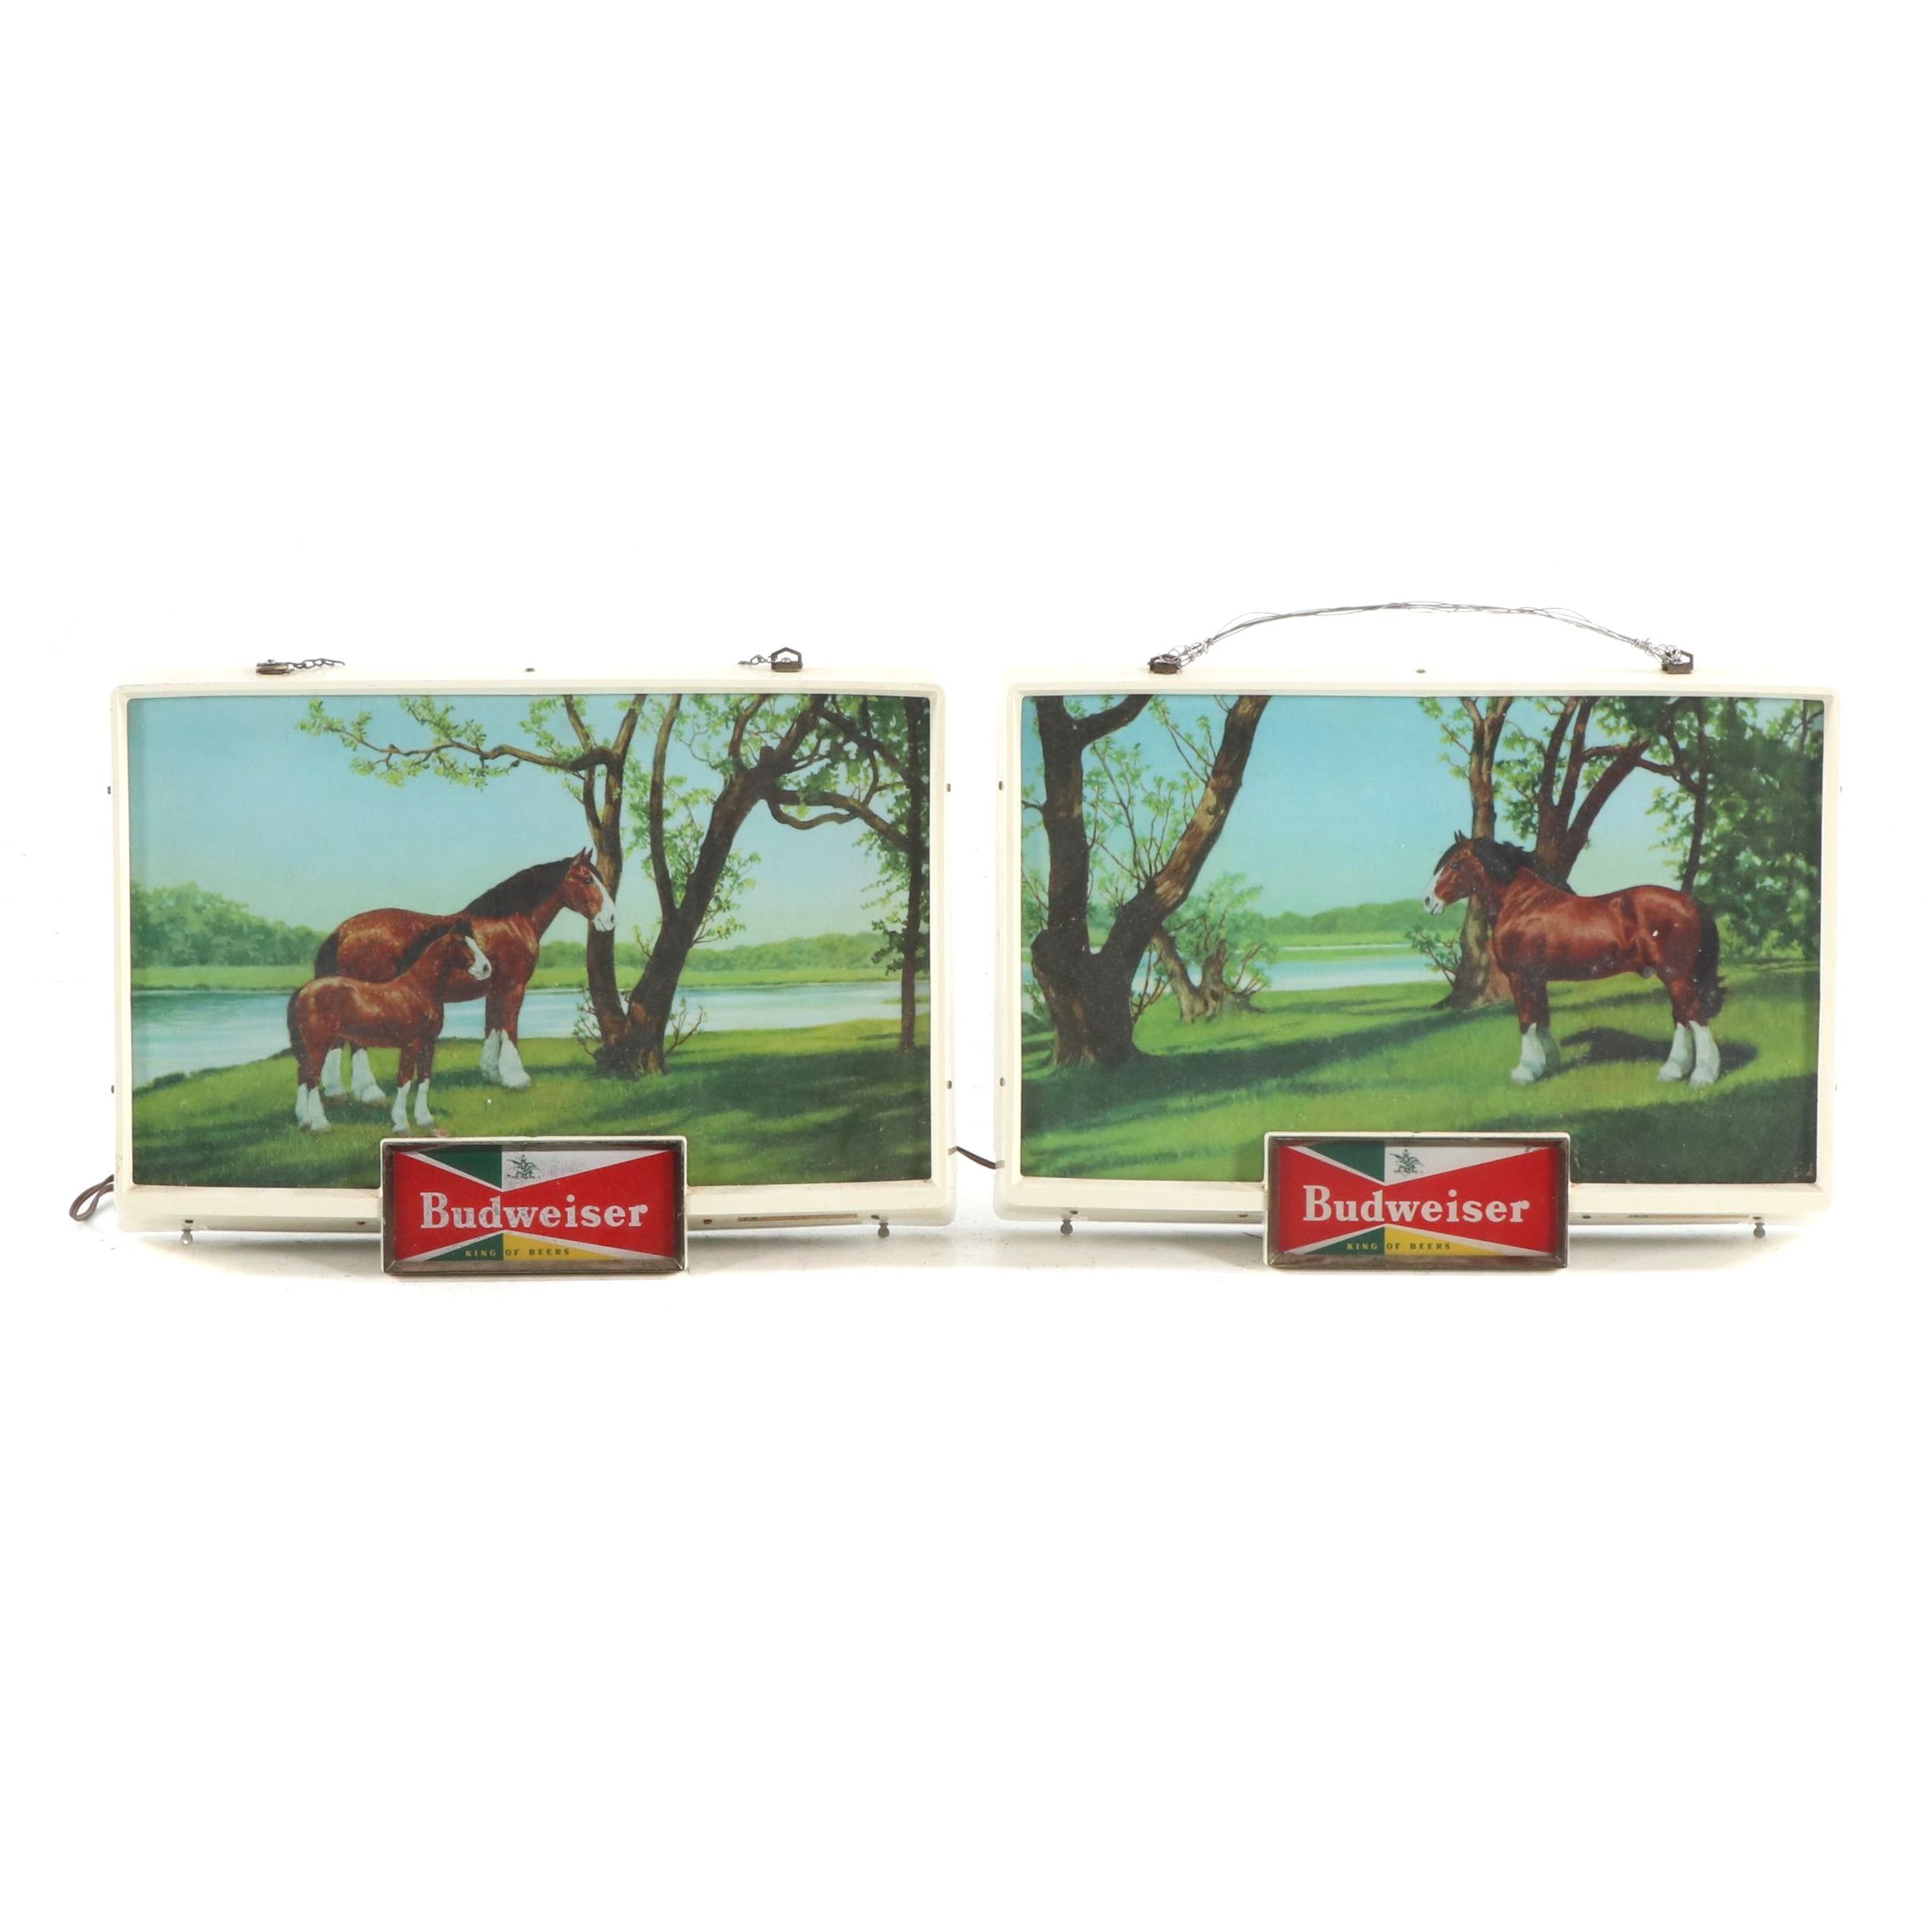 "Anheuser-Busch ""Budweiser"" Clydesdale Illuminated Advertising Signs"